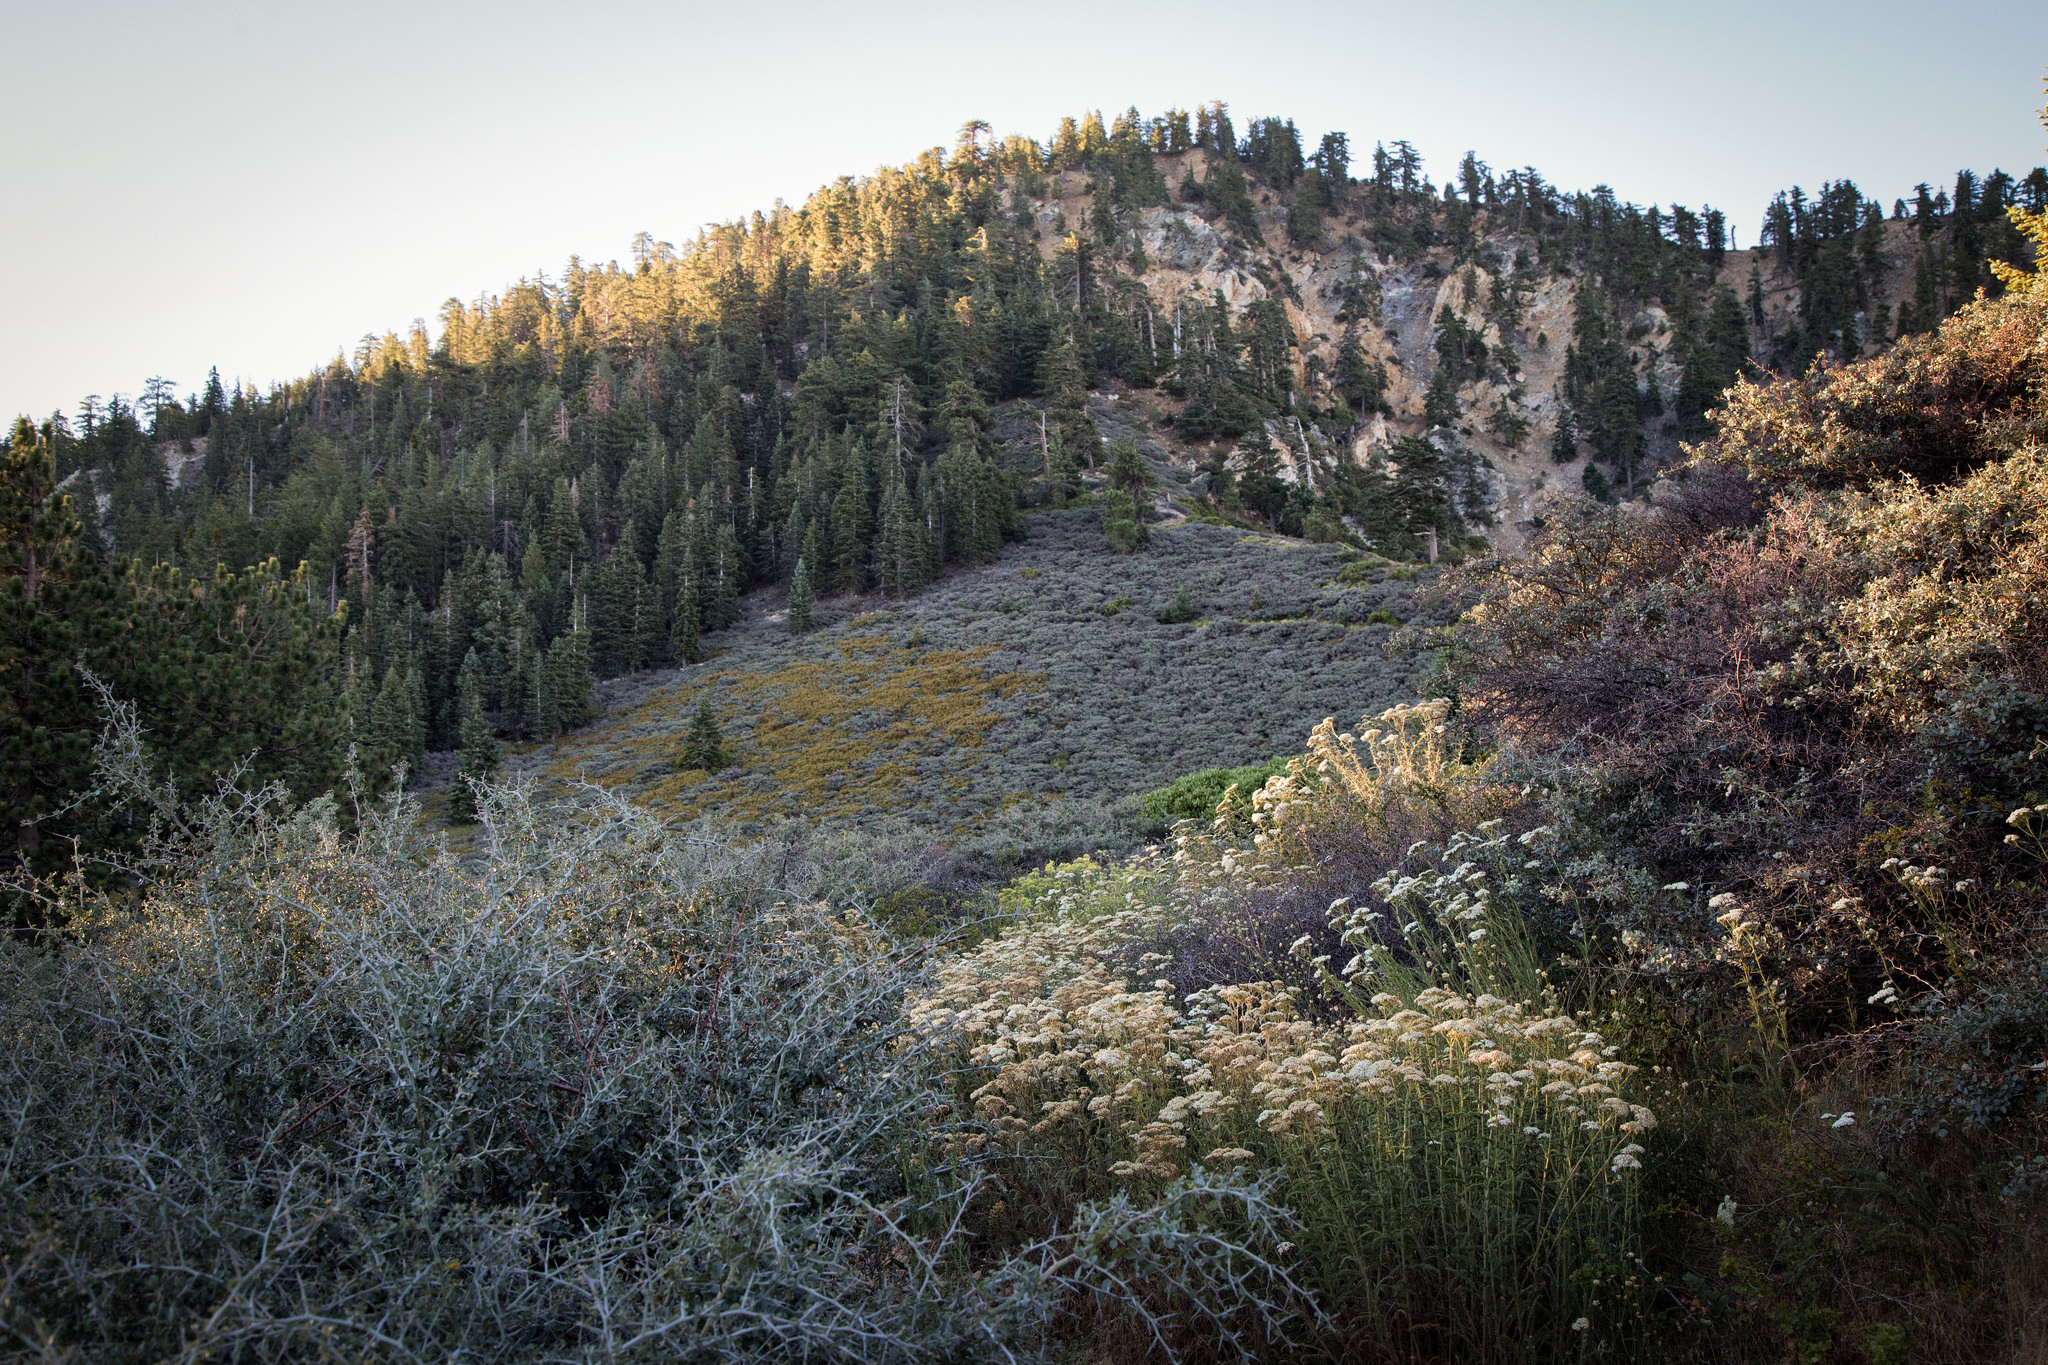 White yarrow and golden rabbitbrush bloom surrounded us on both sides of the path.